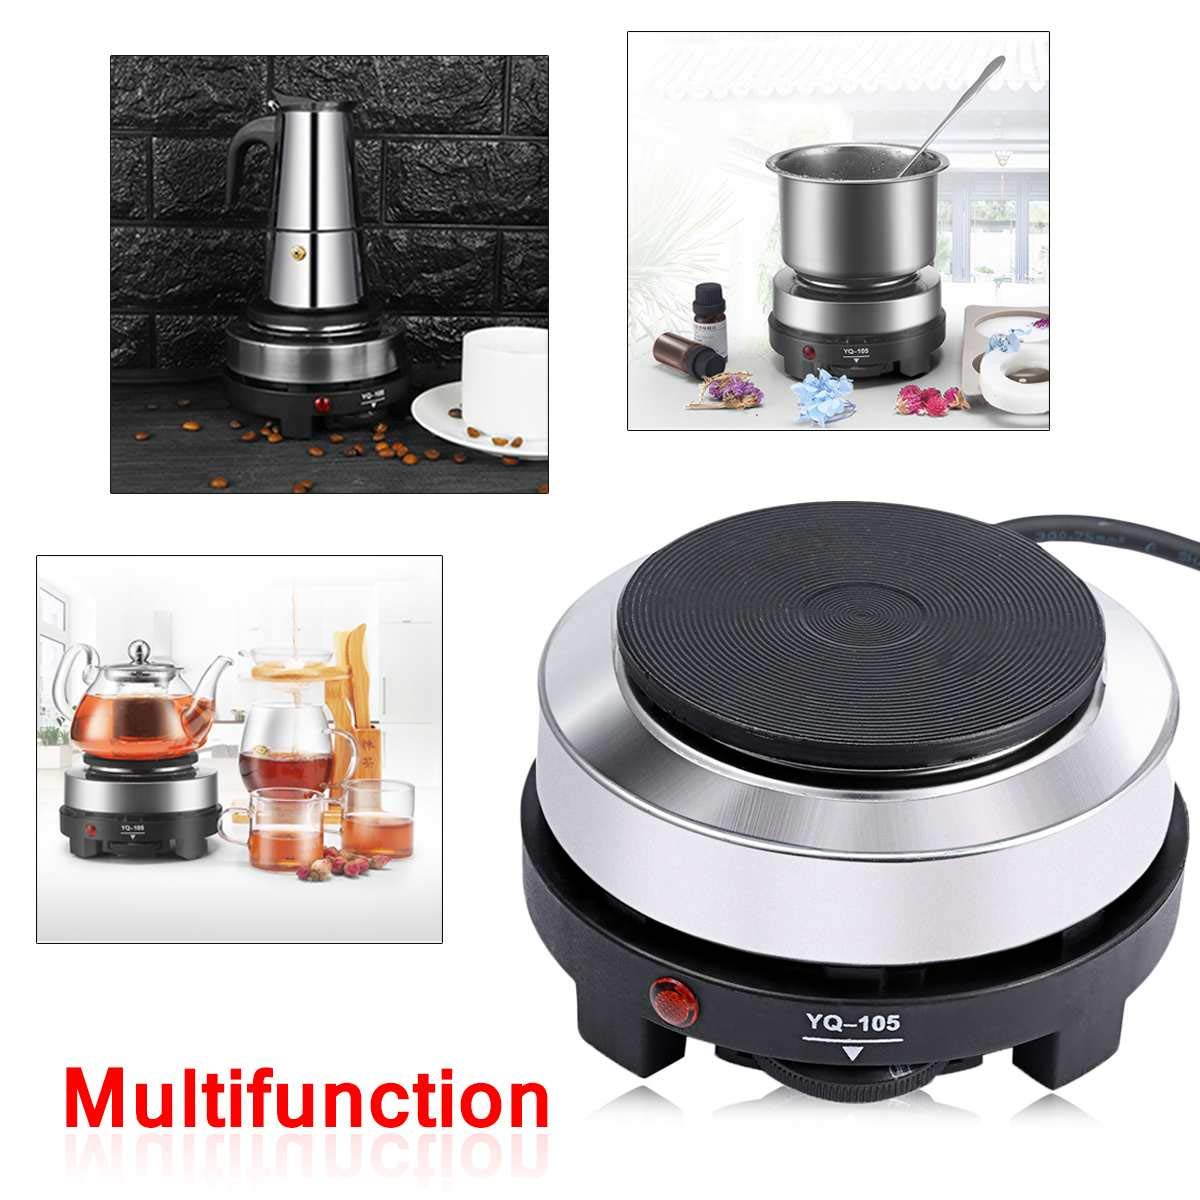 500W Plug Multifunctional Electric Heating Plate Furnace Cooking Coffee Heater Stove Power Saving Portable by Ronald S. Shepard